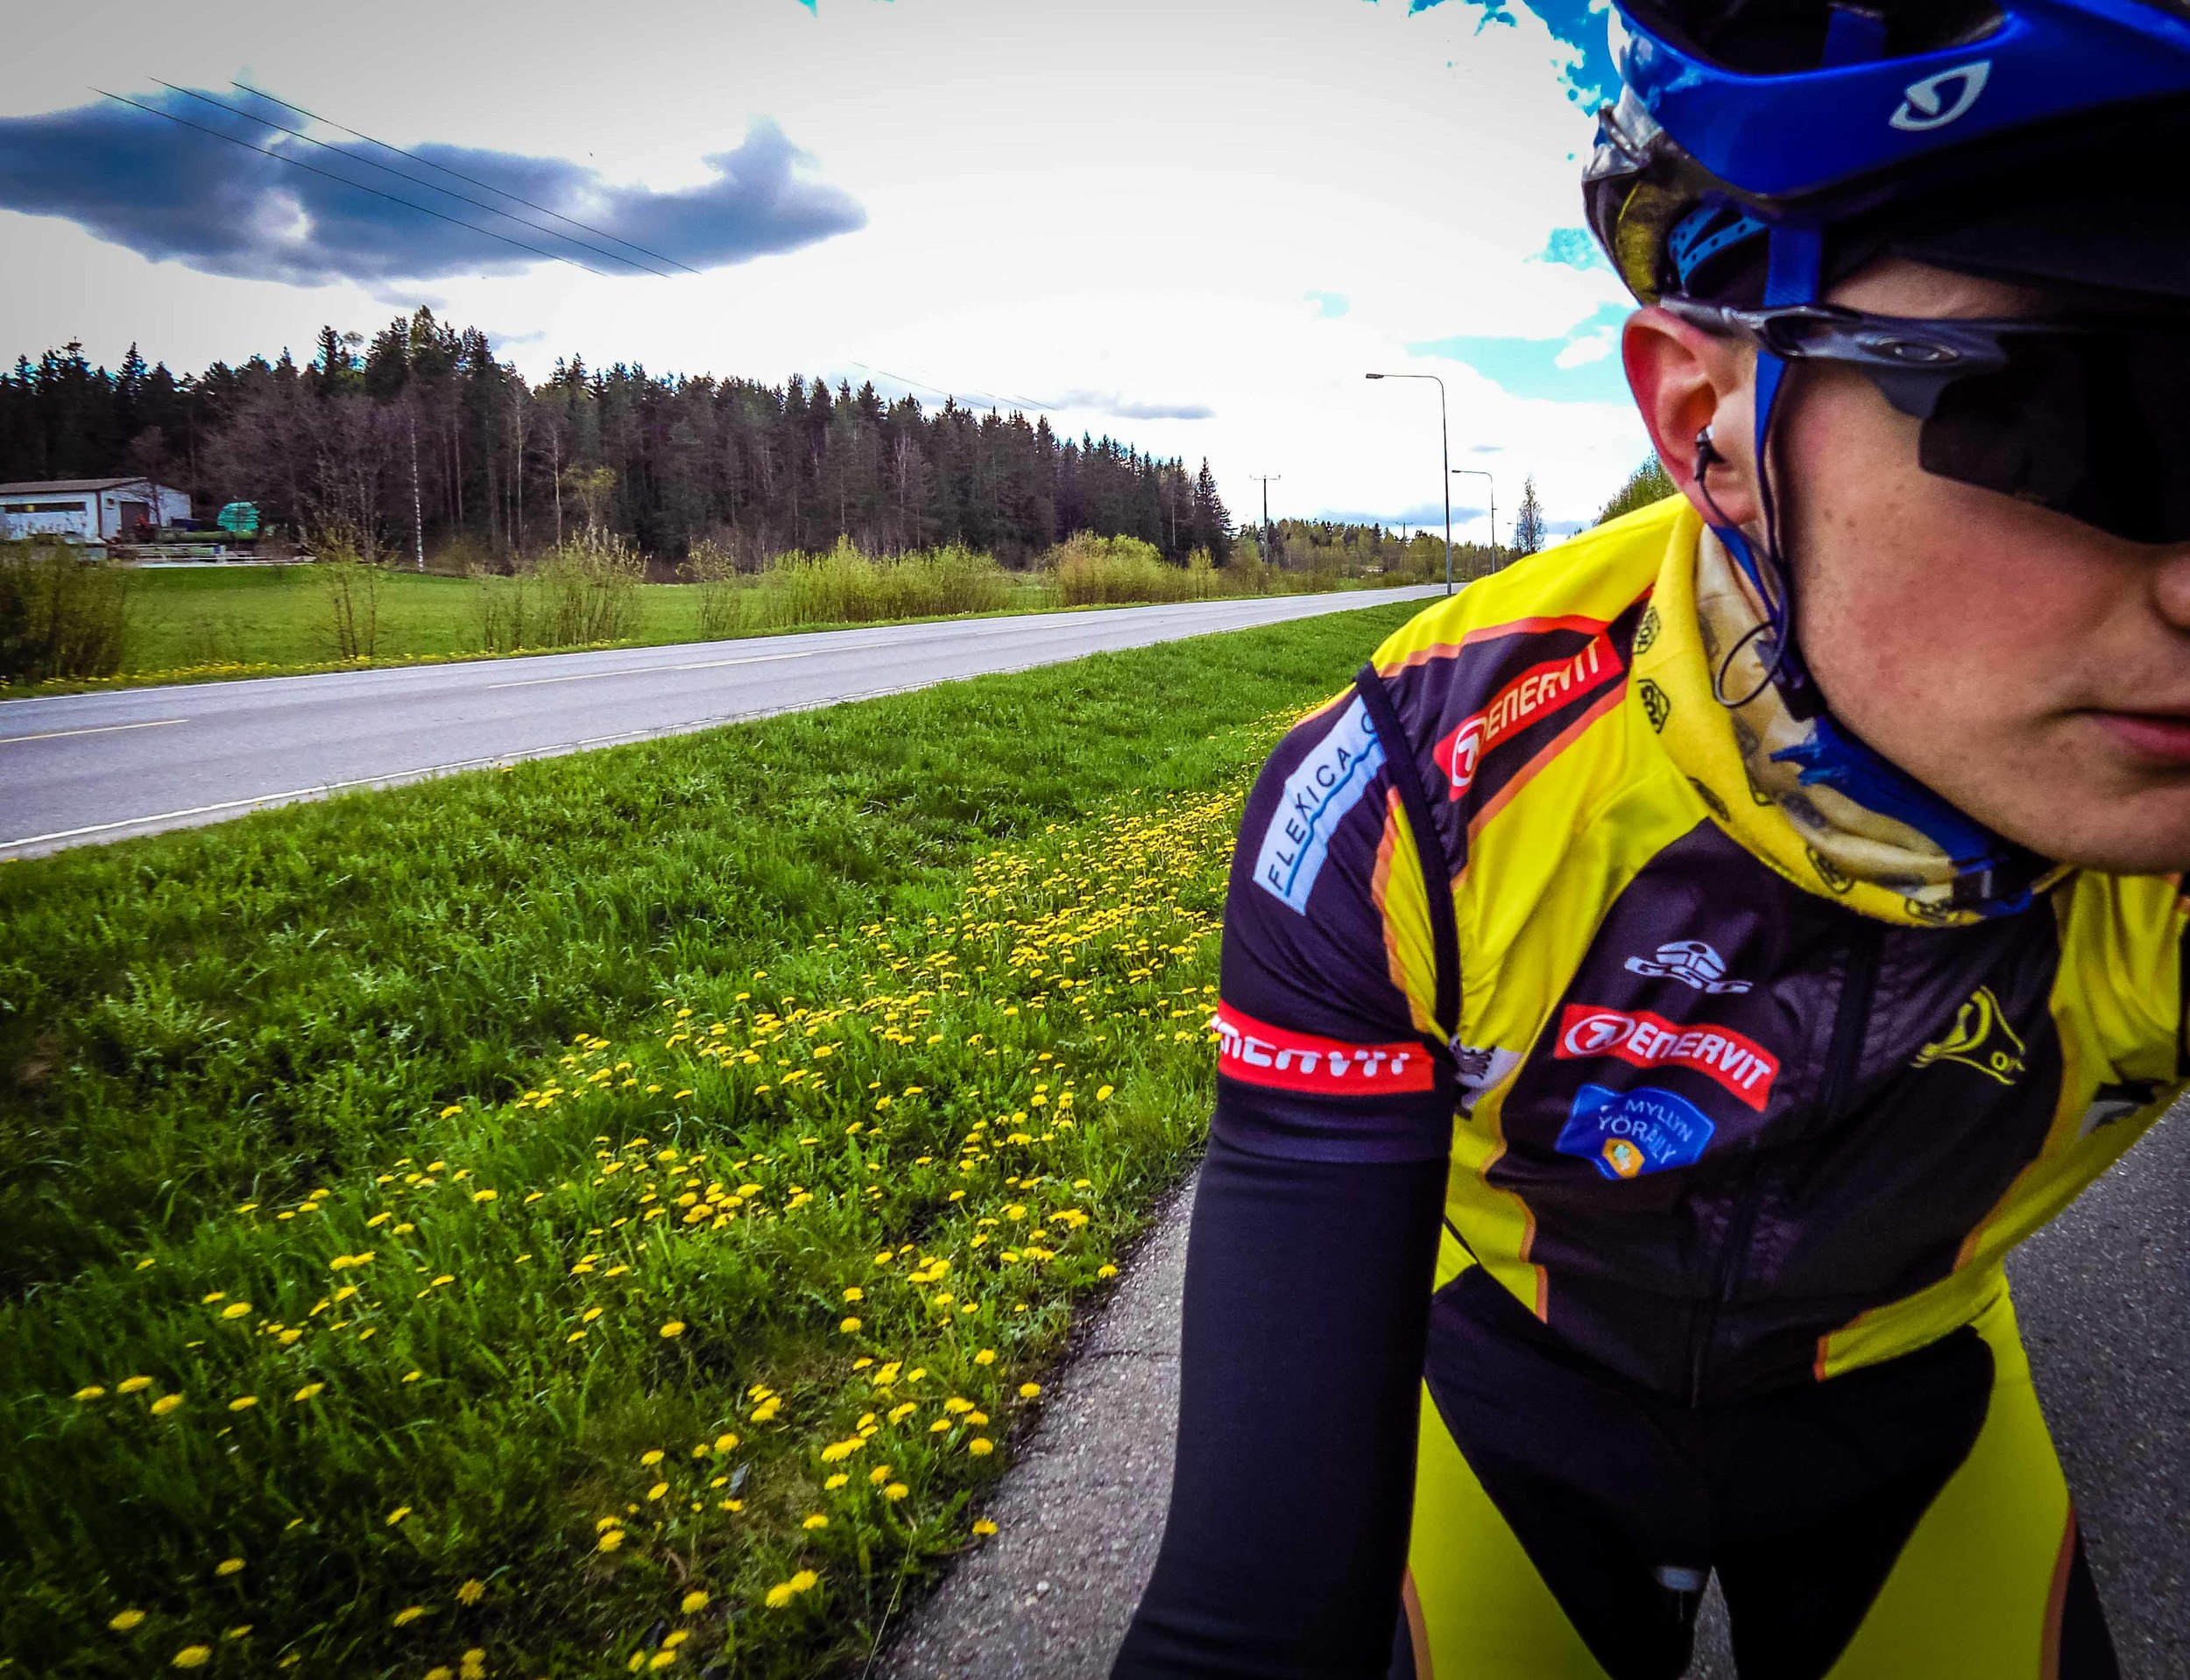 Yeah, theywere all yellow. A nice 1,5 hour warming up ride in sunny weather!